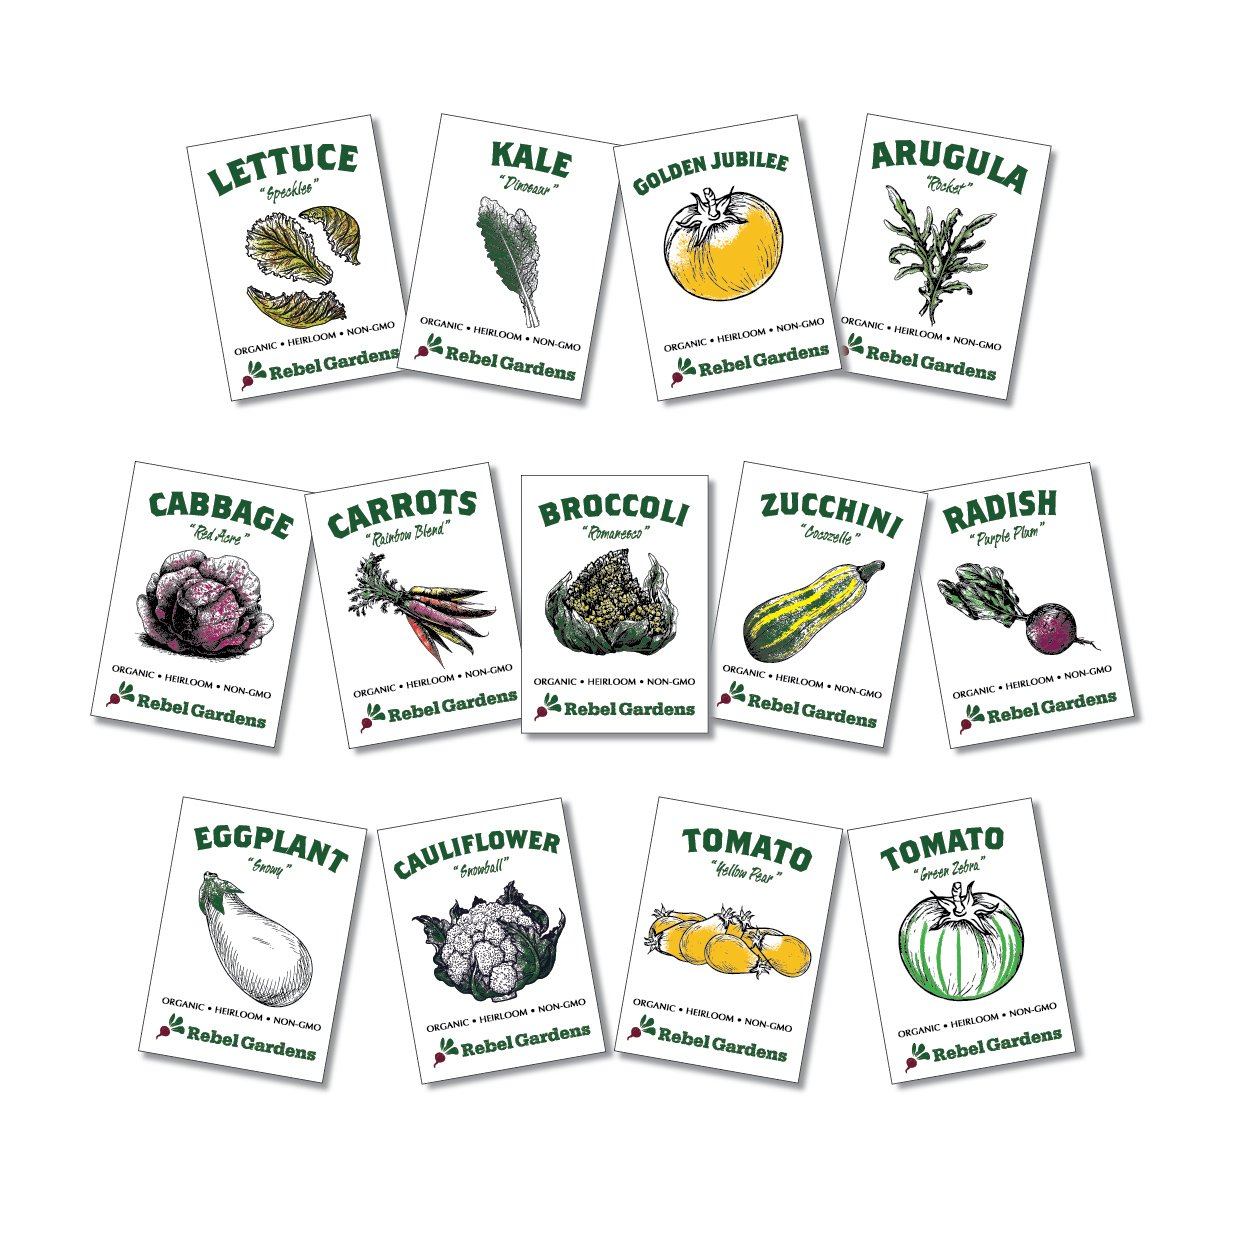 Heirloom Vegetable Seeds - 13 Varieties of Organic Non-GMO Open Pollinated Garden Seed for Planting - Weird and Rare Varieties Perfect for Kids and School Gardens by Rebel Gardens